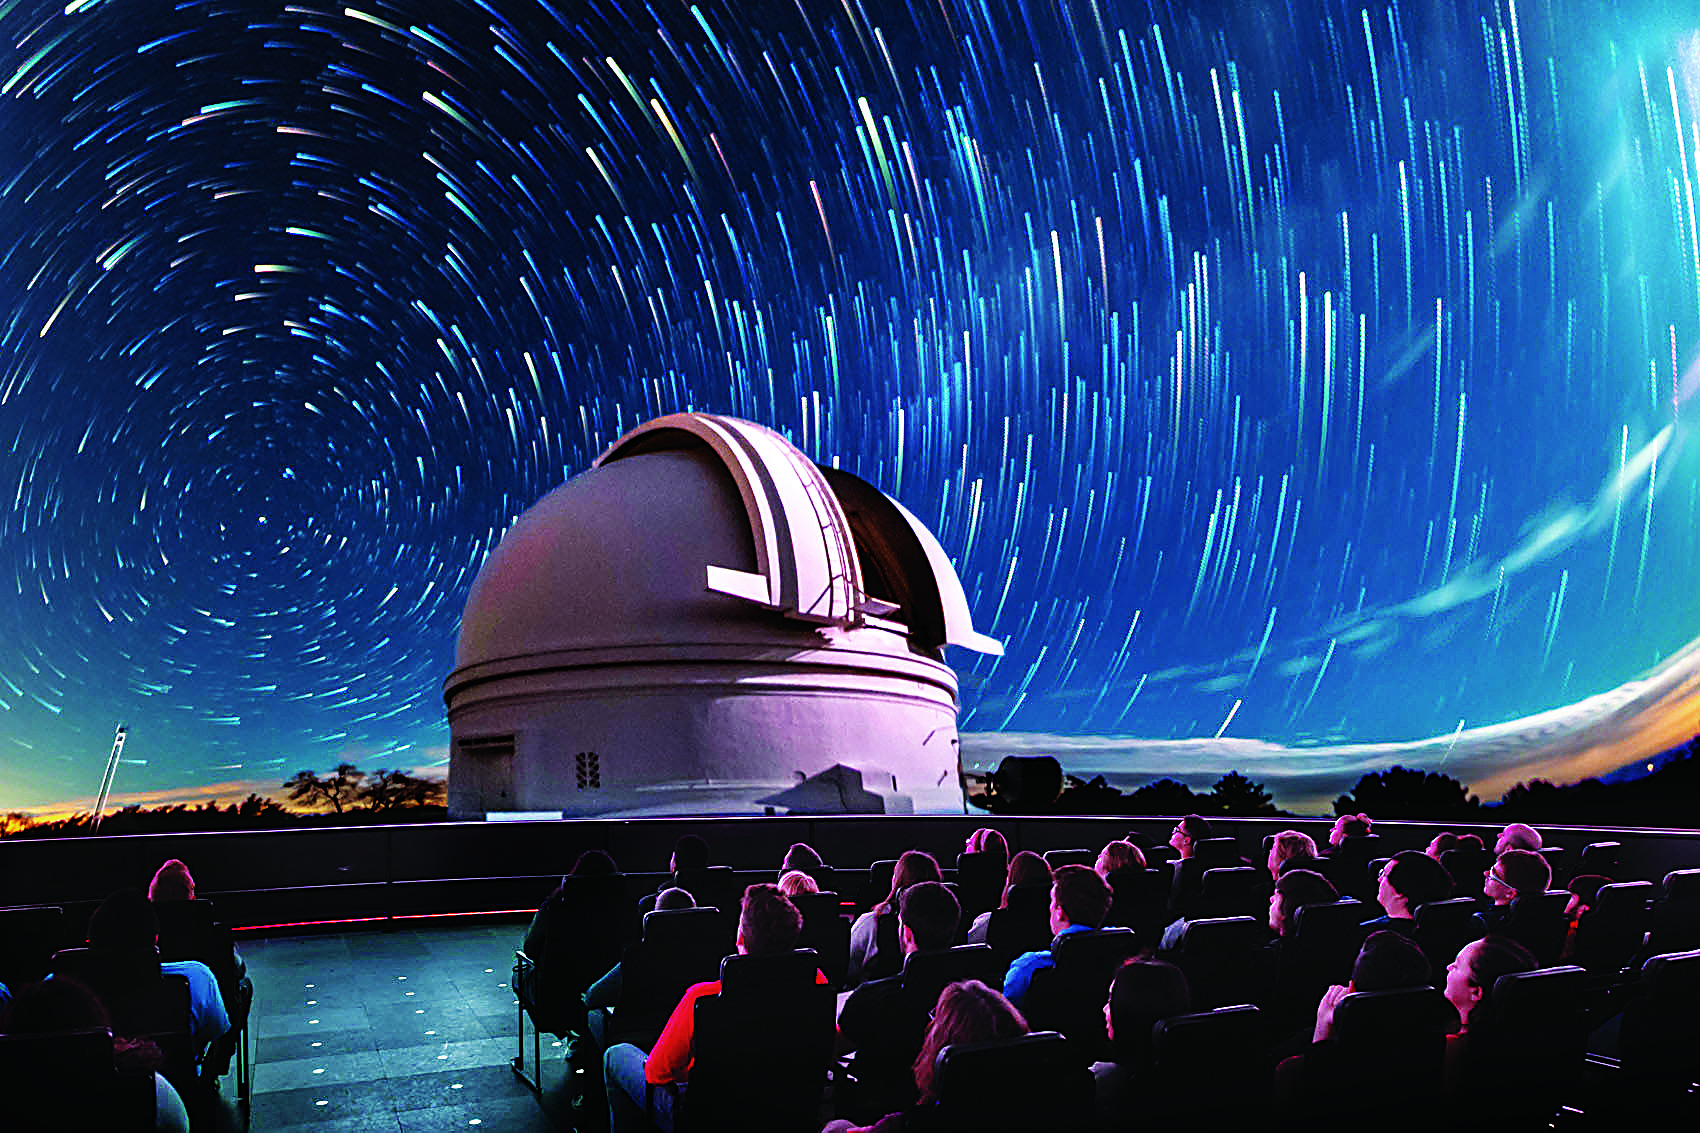 Adler Planetarium Boosts Domed Theater Image Quality With